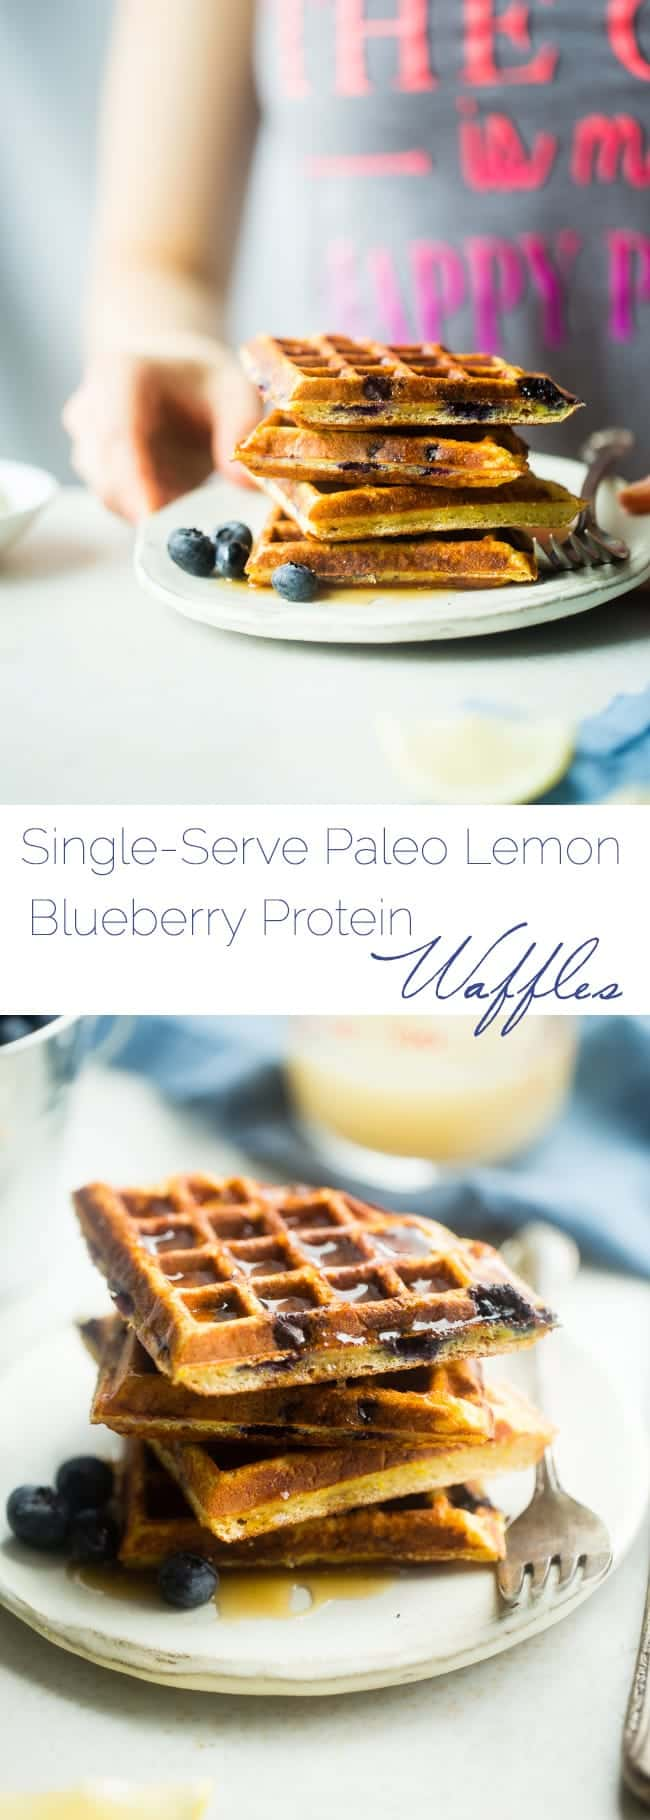 Single-Serve Lemon Blueberry Paleo Protein Waffles - These single-serve protein waffles are studded with juicy blueberries and have a 5 minute lemon sauce! Perfect for a paleo friendly, gluten free breakfast on busy mornings! | FoodFaithfitness.com | @FoodFaithFit